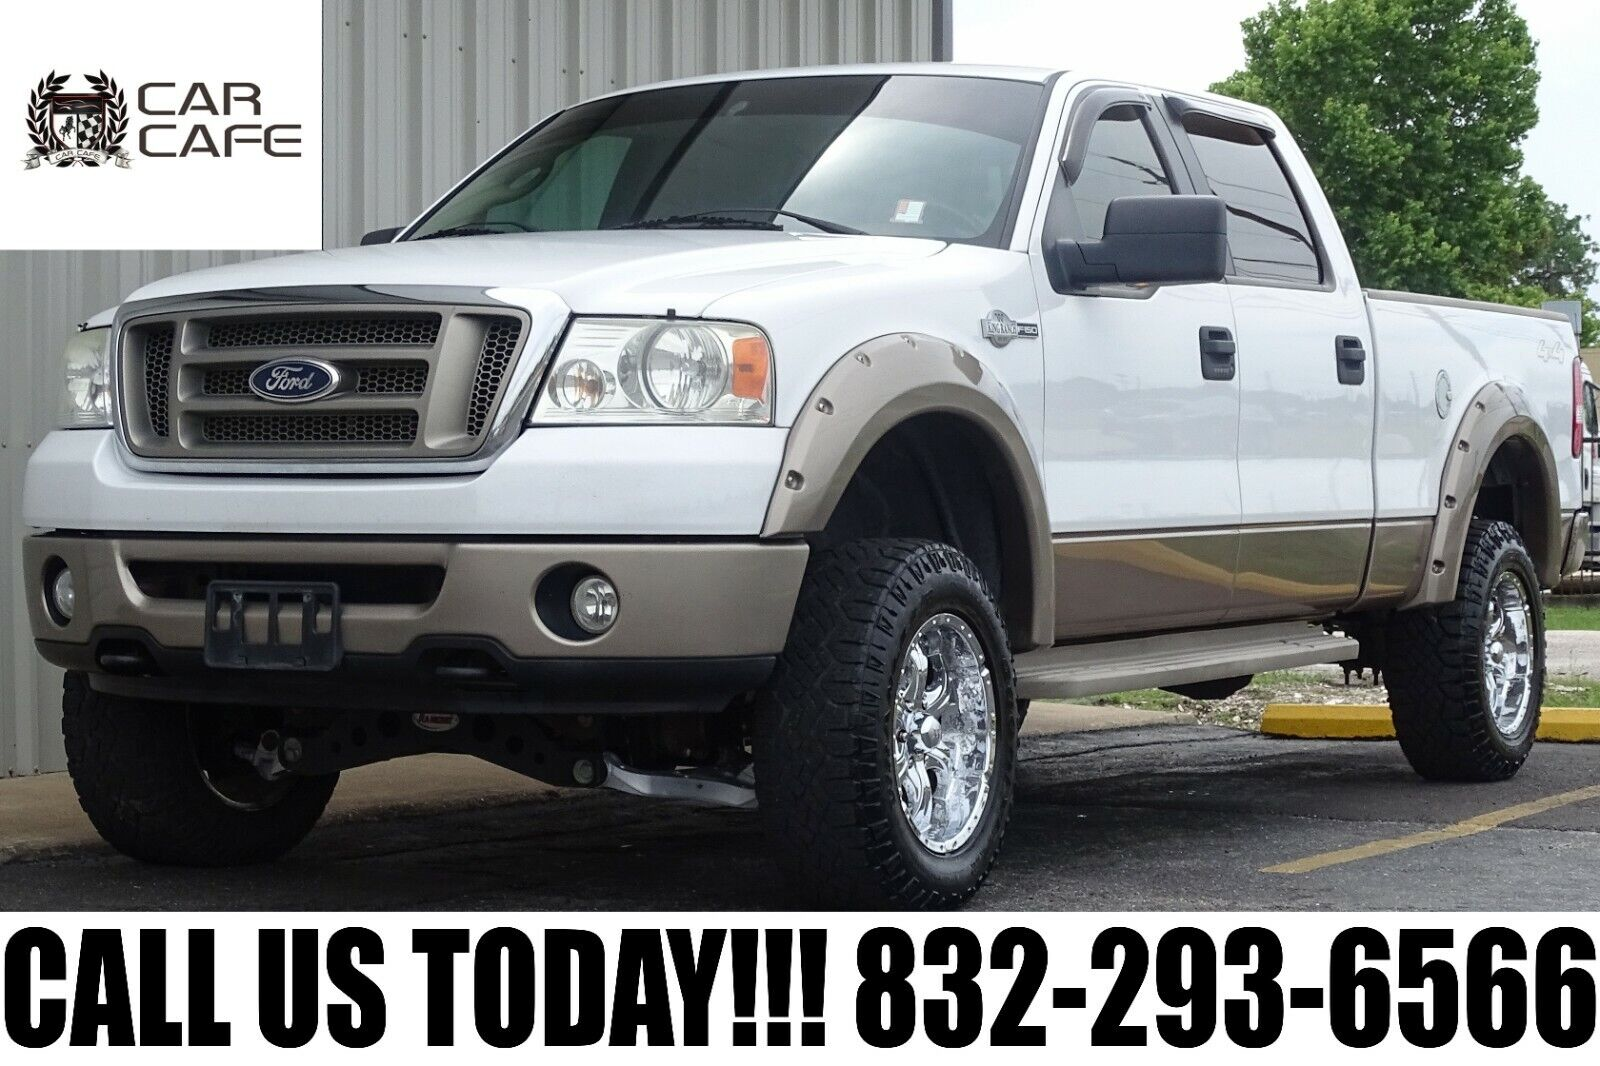 06 FORD F150 KING RANCH 6.5 BED 4X4 ACCIDENT FREE LIFTED SUSPENSION DUAL EXHAUST